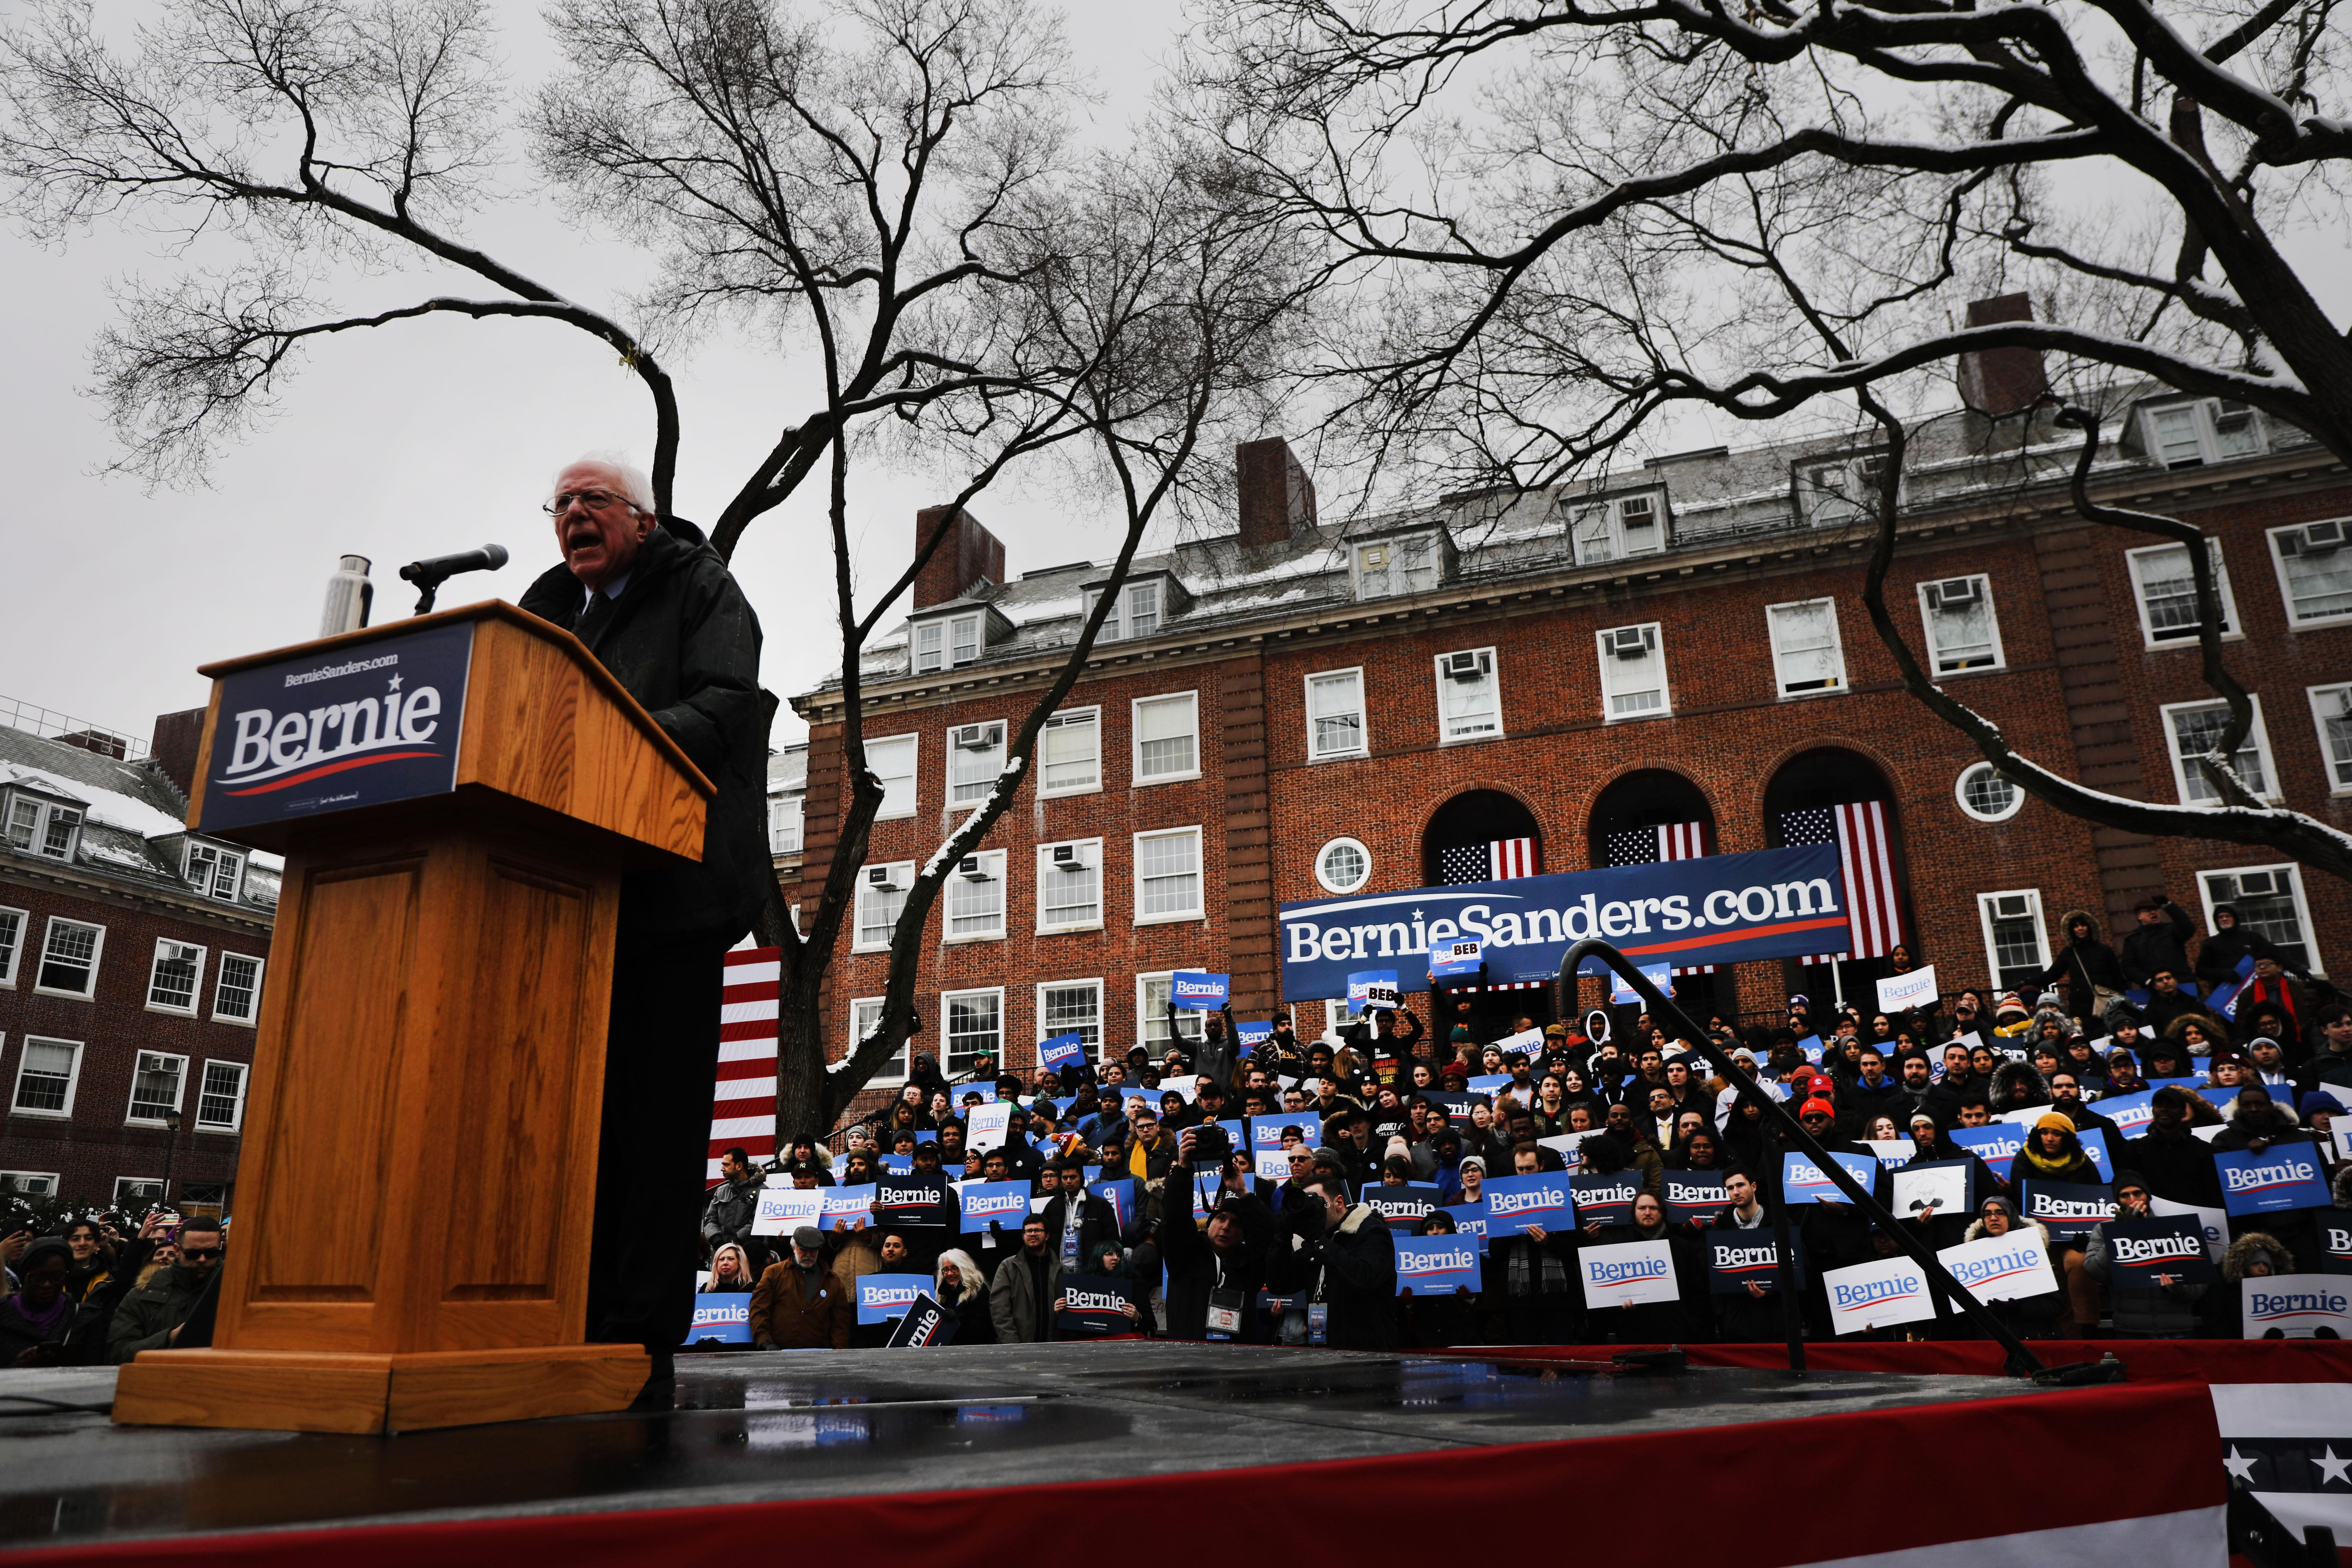 Bernie Sanders stands at a podium on a stage outdoors in front of supporters.